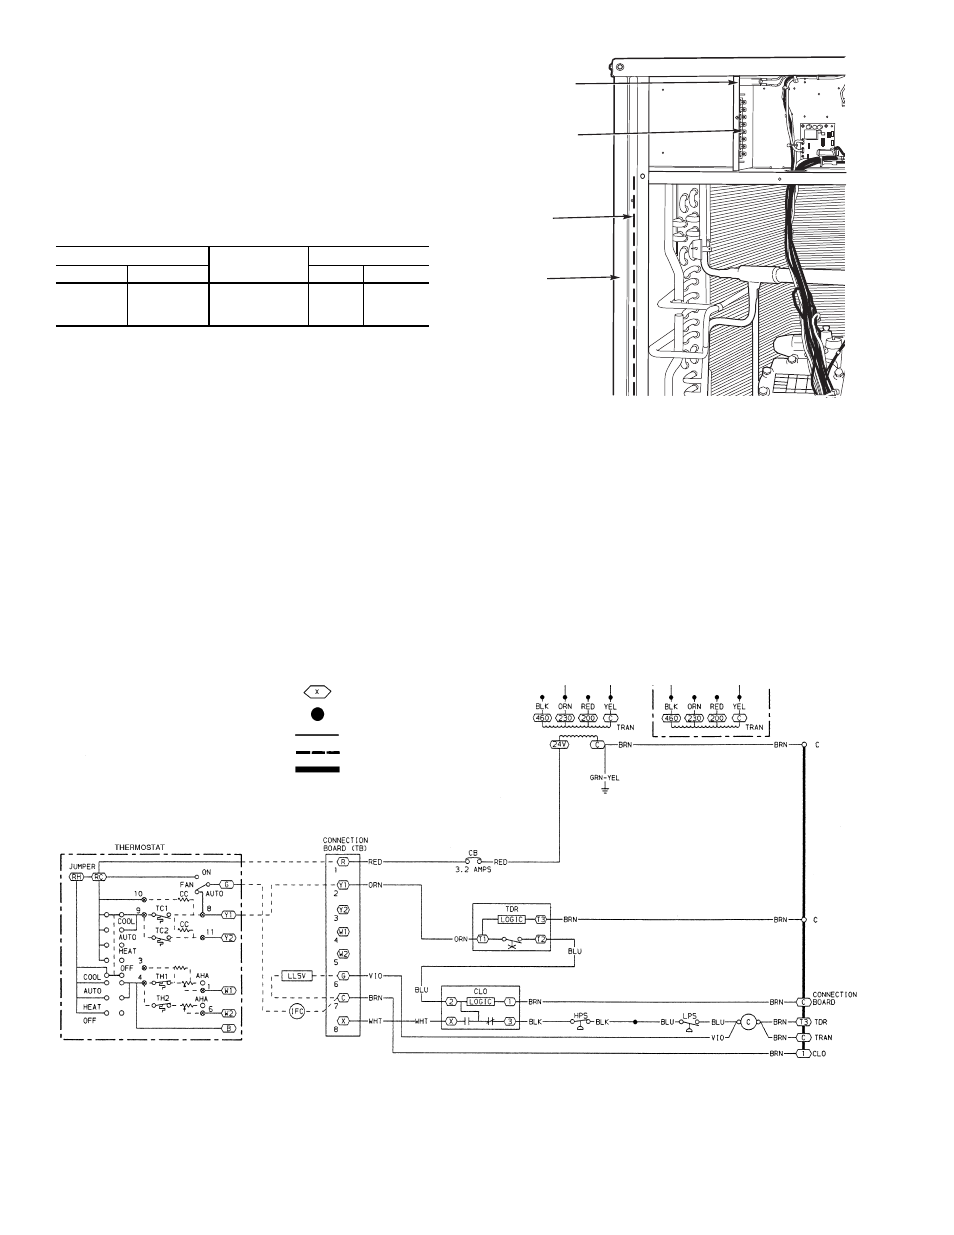 Carrier 38ak012 user manual page 8 16 also for 38ak007 carrier 38ak012 user manual page 8 16 also for 38ak007 38aks008 38aks009 38aks012 greentooth Image collections